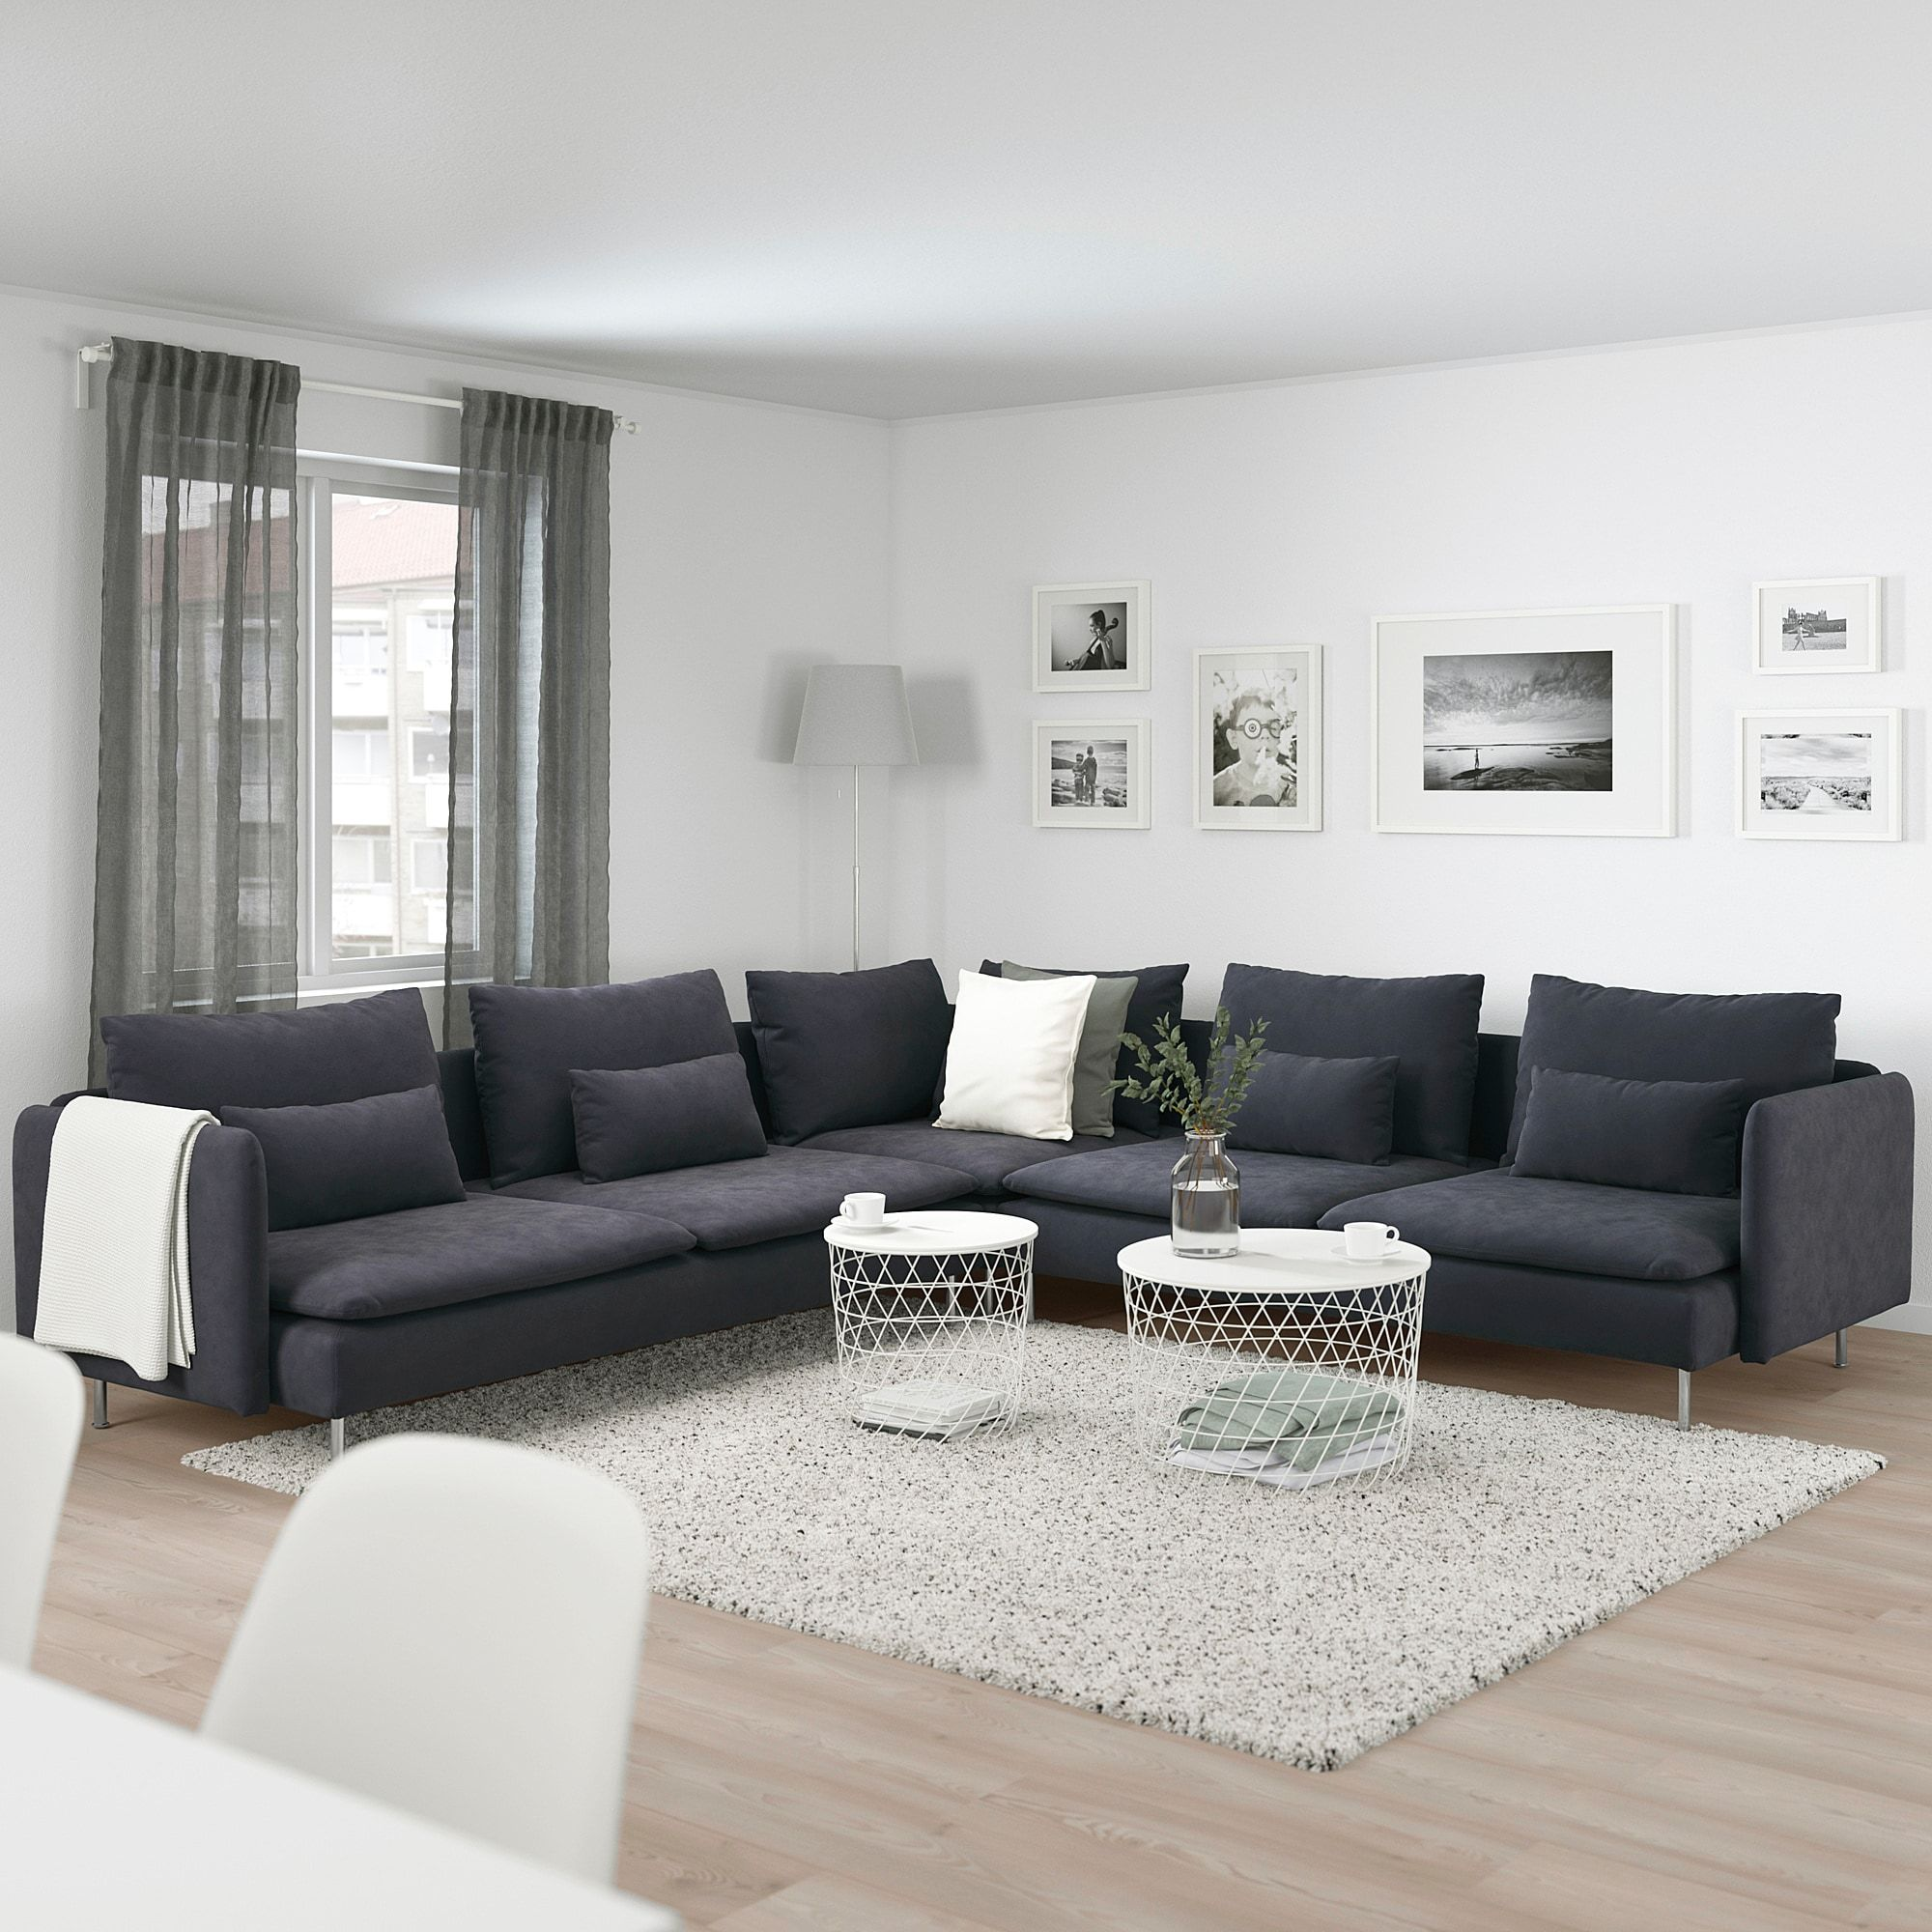 Stupendous Ikea Soderhamn Sectional 5 Seat Samsta Dark Gray In 2019 Pabps2019 Chair Design Images Pabps2019Com